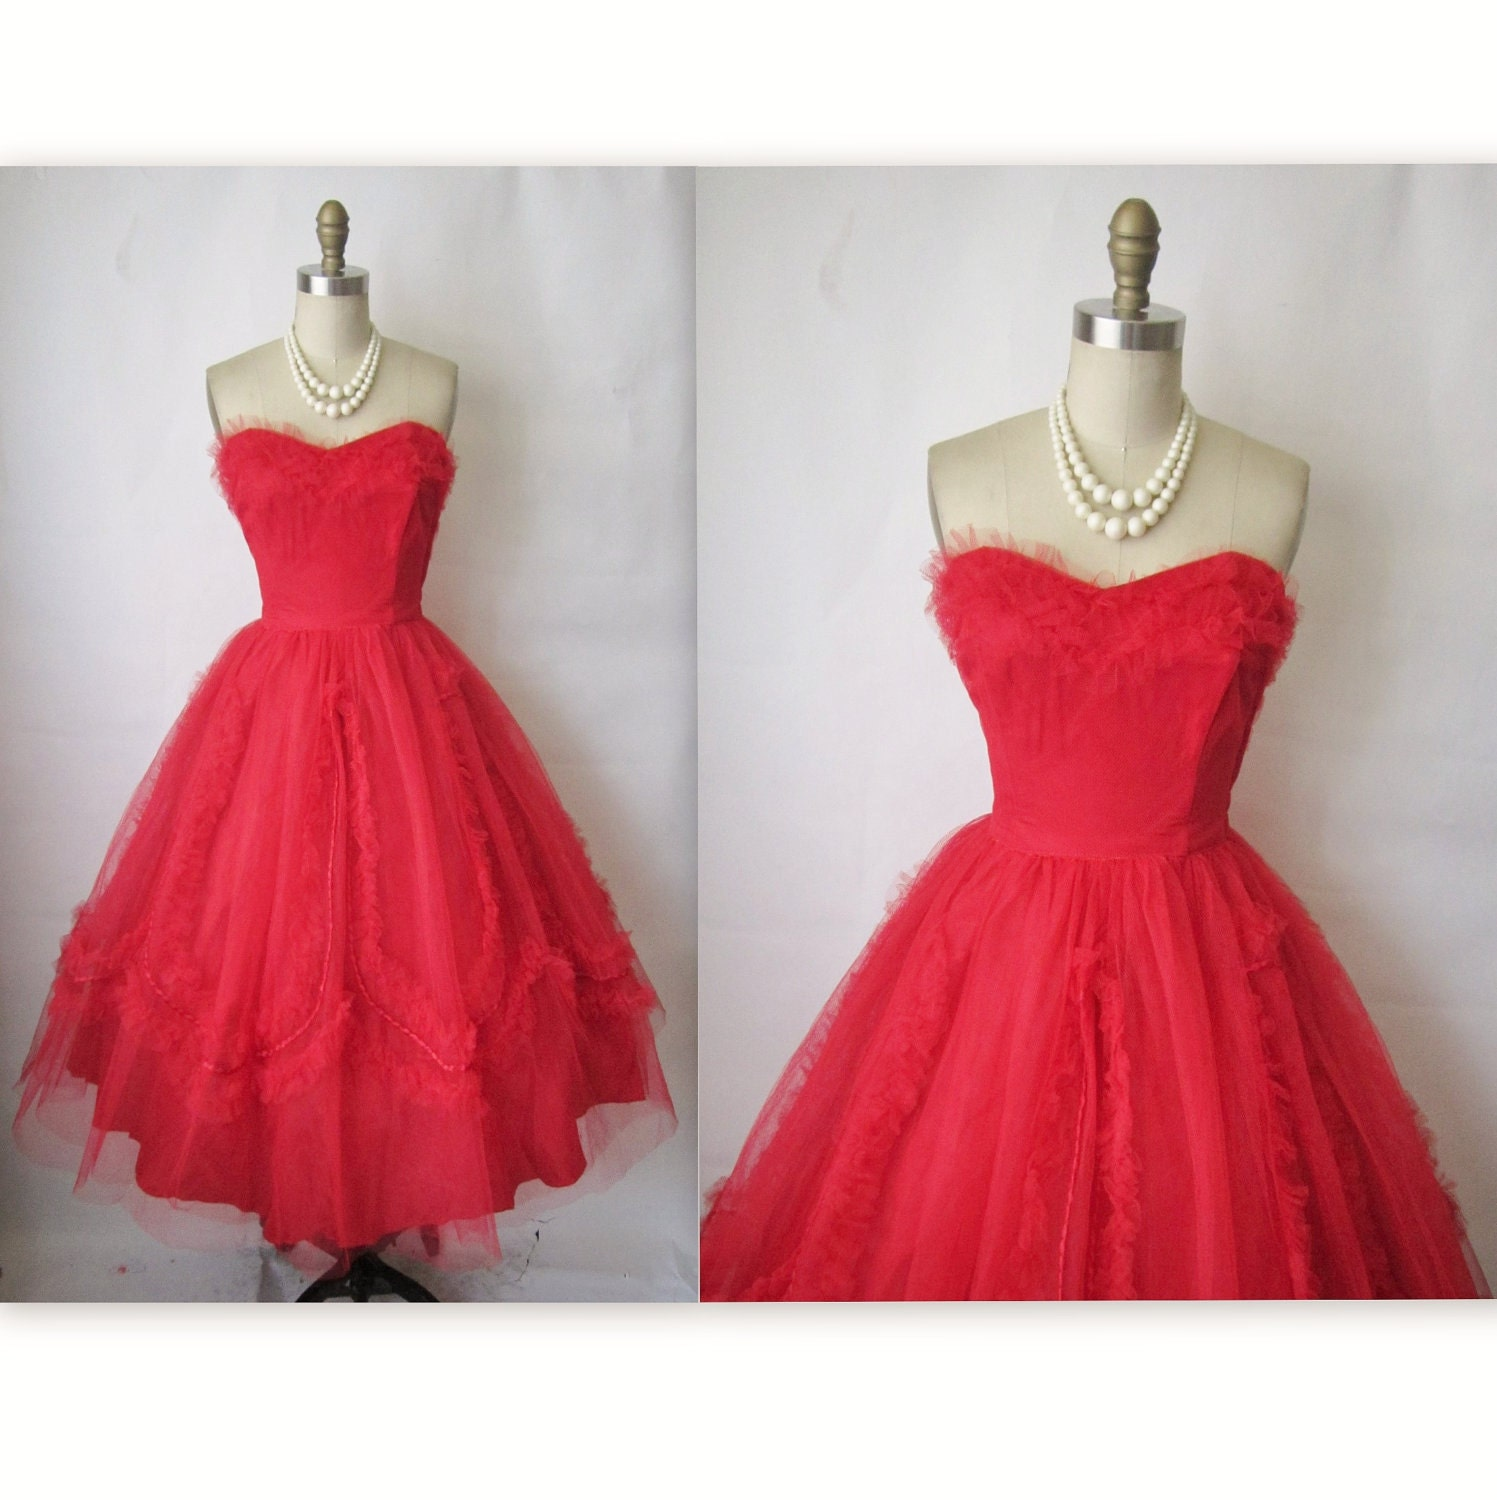 50 S Vintage Prom Dresses - Cocktail Dresses 2016